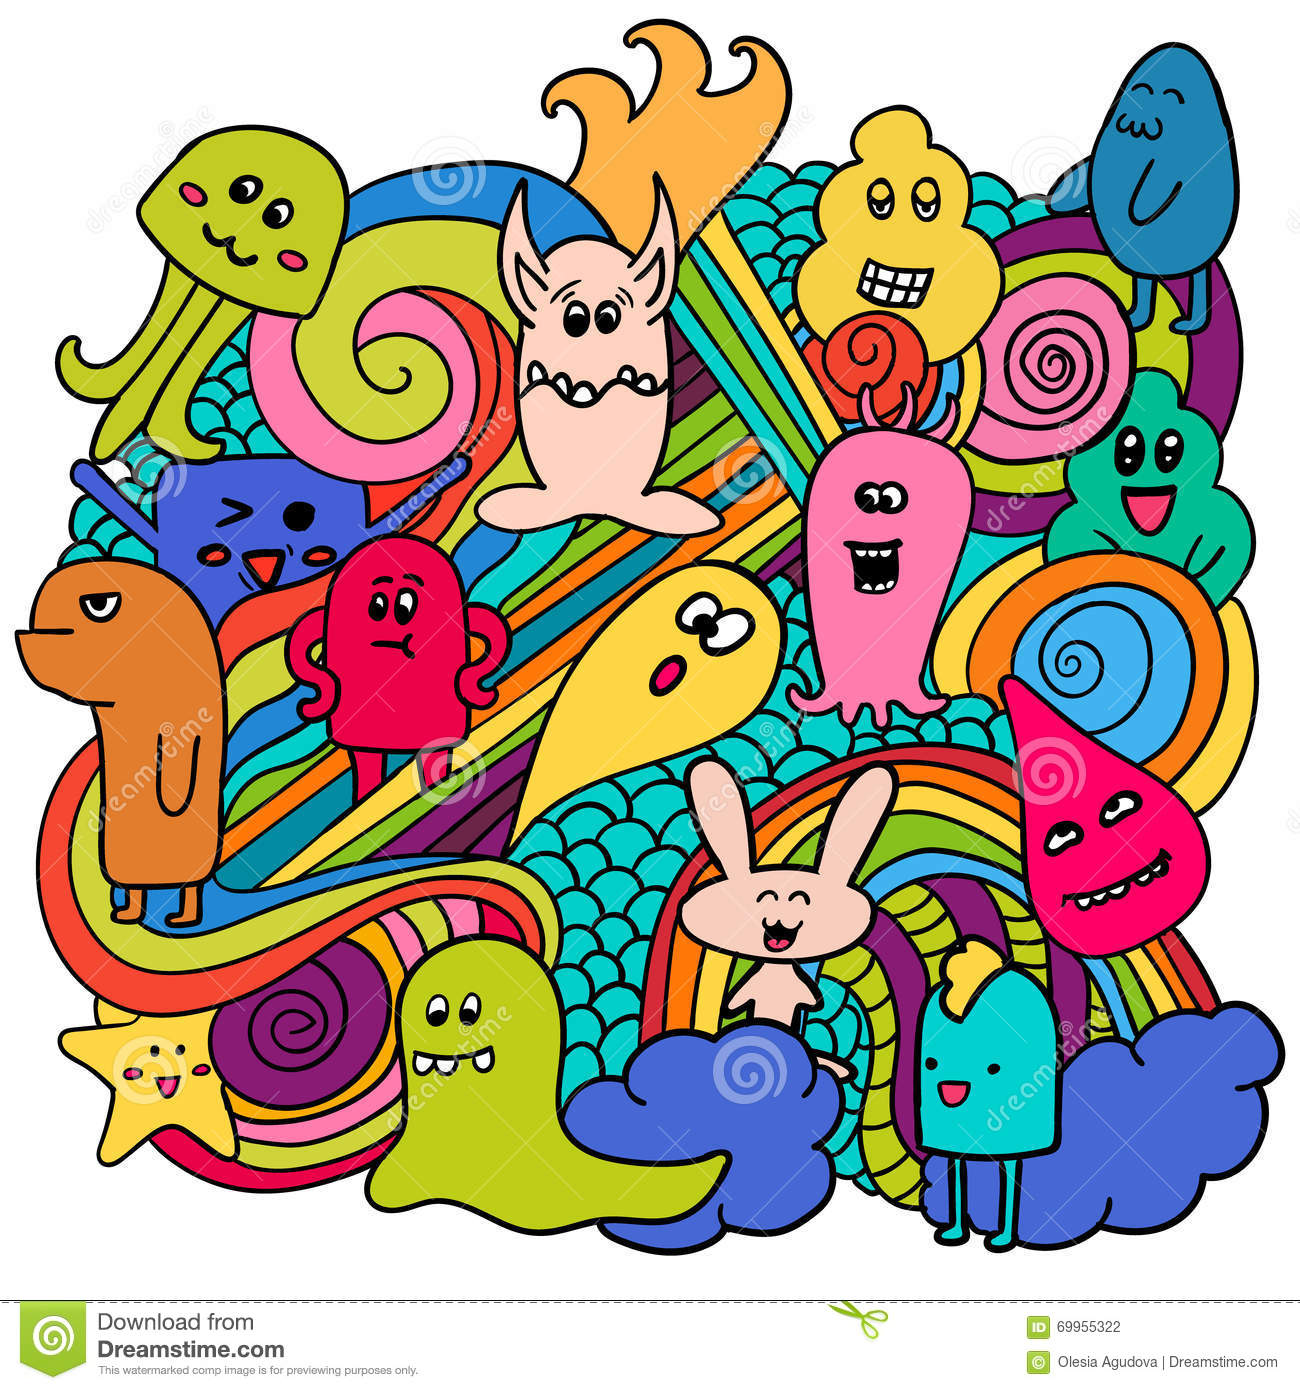 funny monsters graffiti hand drawn sketch art doodle vector